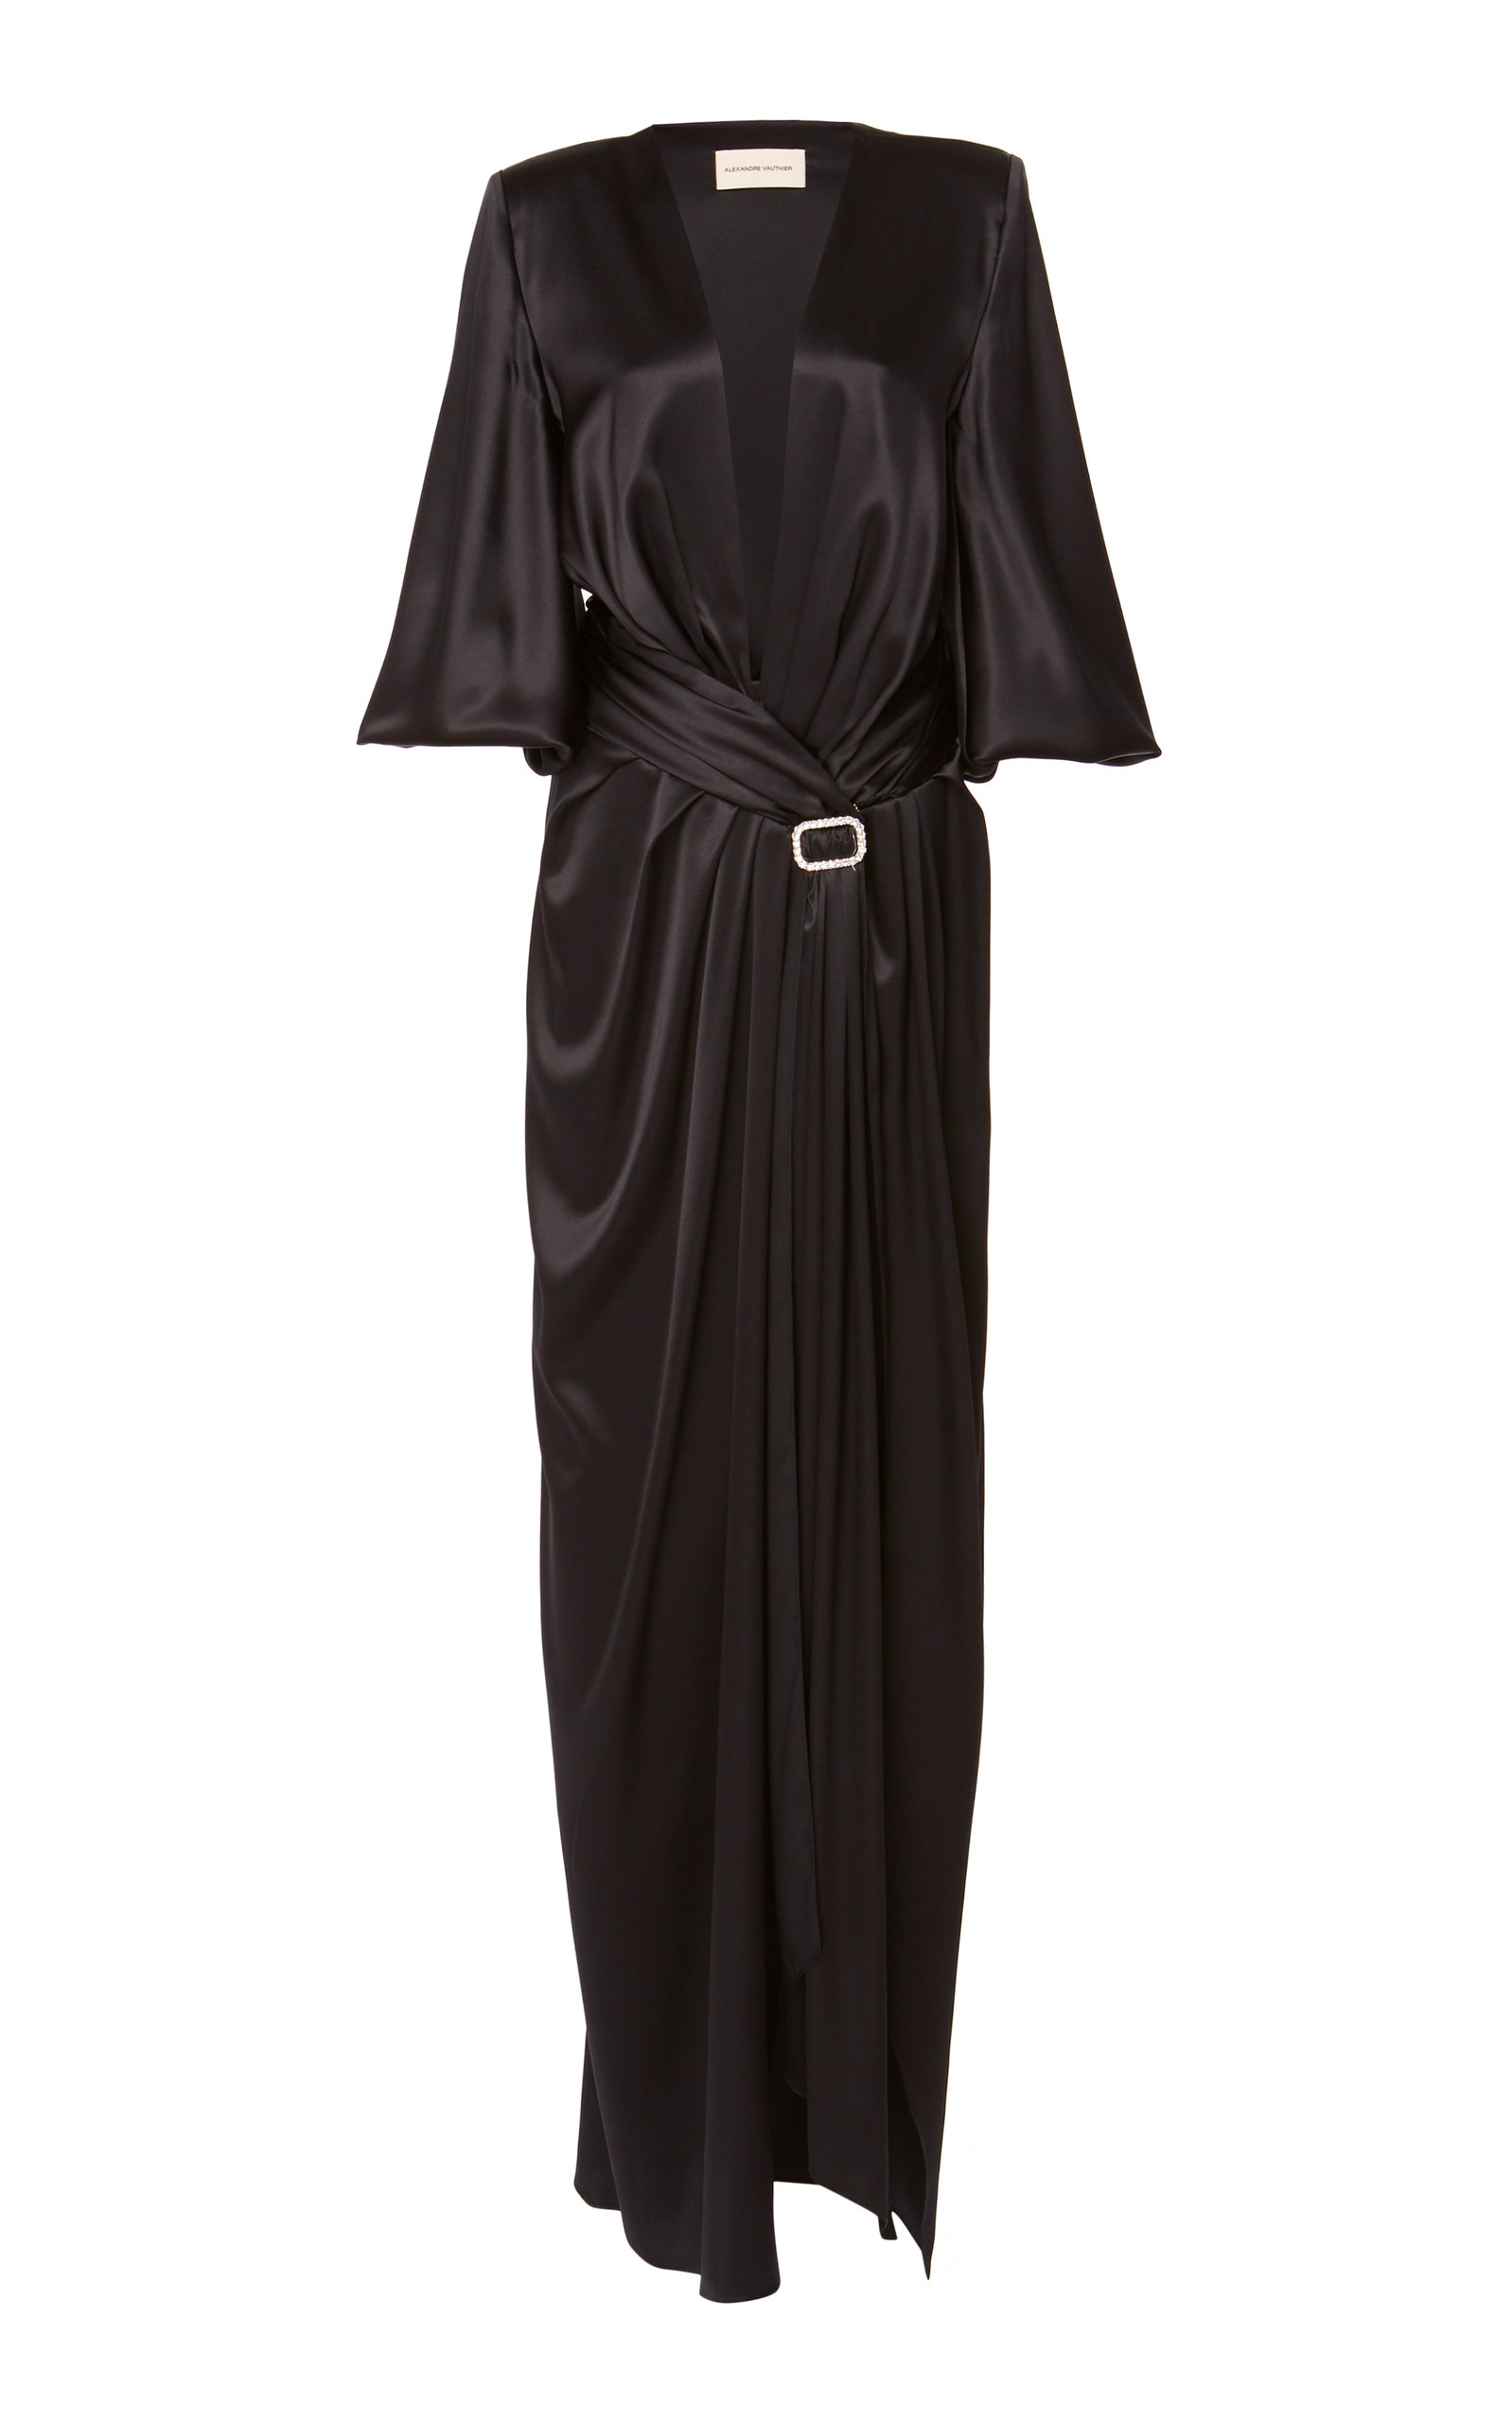 Buy Alexandre Vauthier Draped Belted Silk-Blend Dress online, shop Alexandre Vauthier at the best price